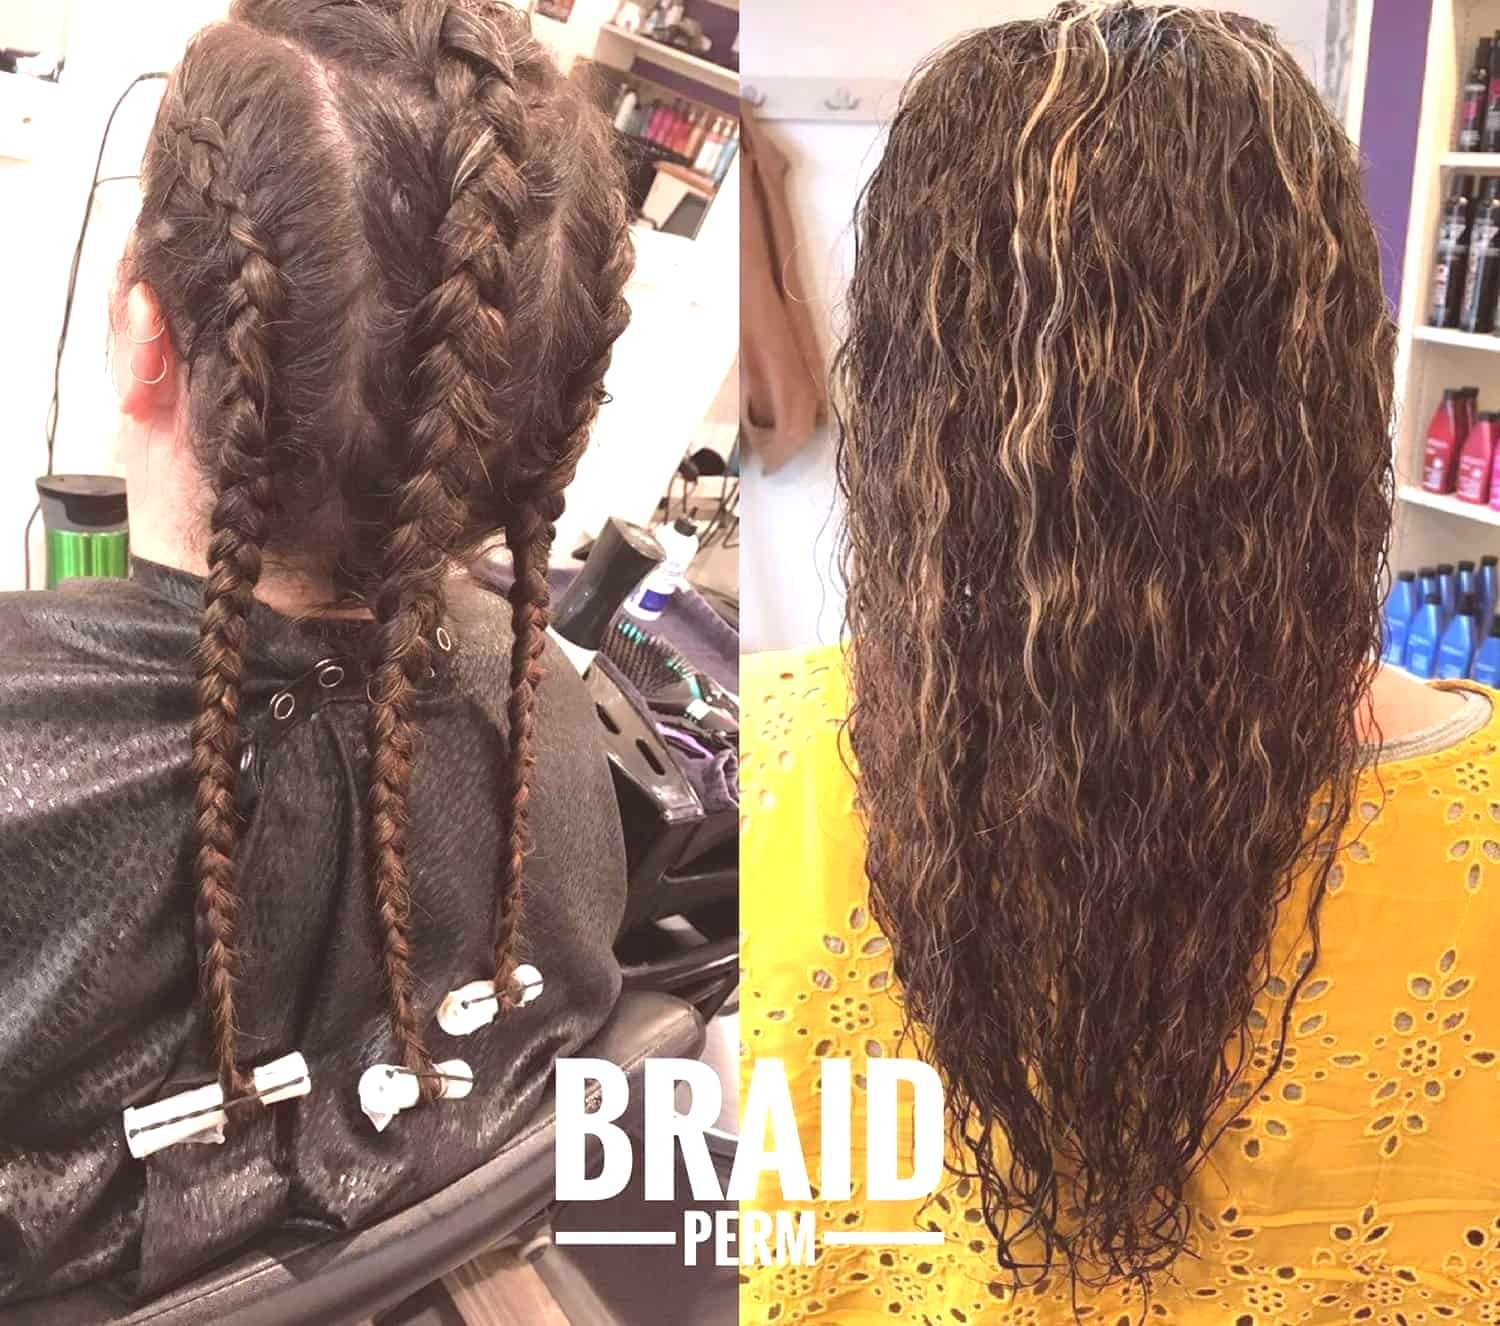 Pictures Modern Before Perms After 2019 With Day 13 In 13 Modern Day Perms In 2019 With Before After Pictures Y In 2020 Permed Hairstyles Hair Styles Perm